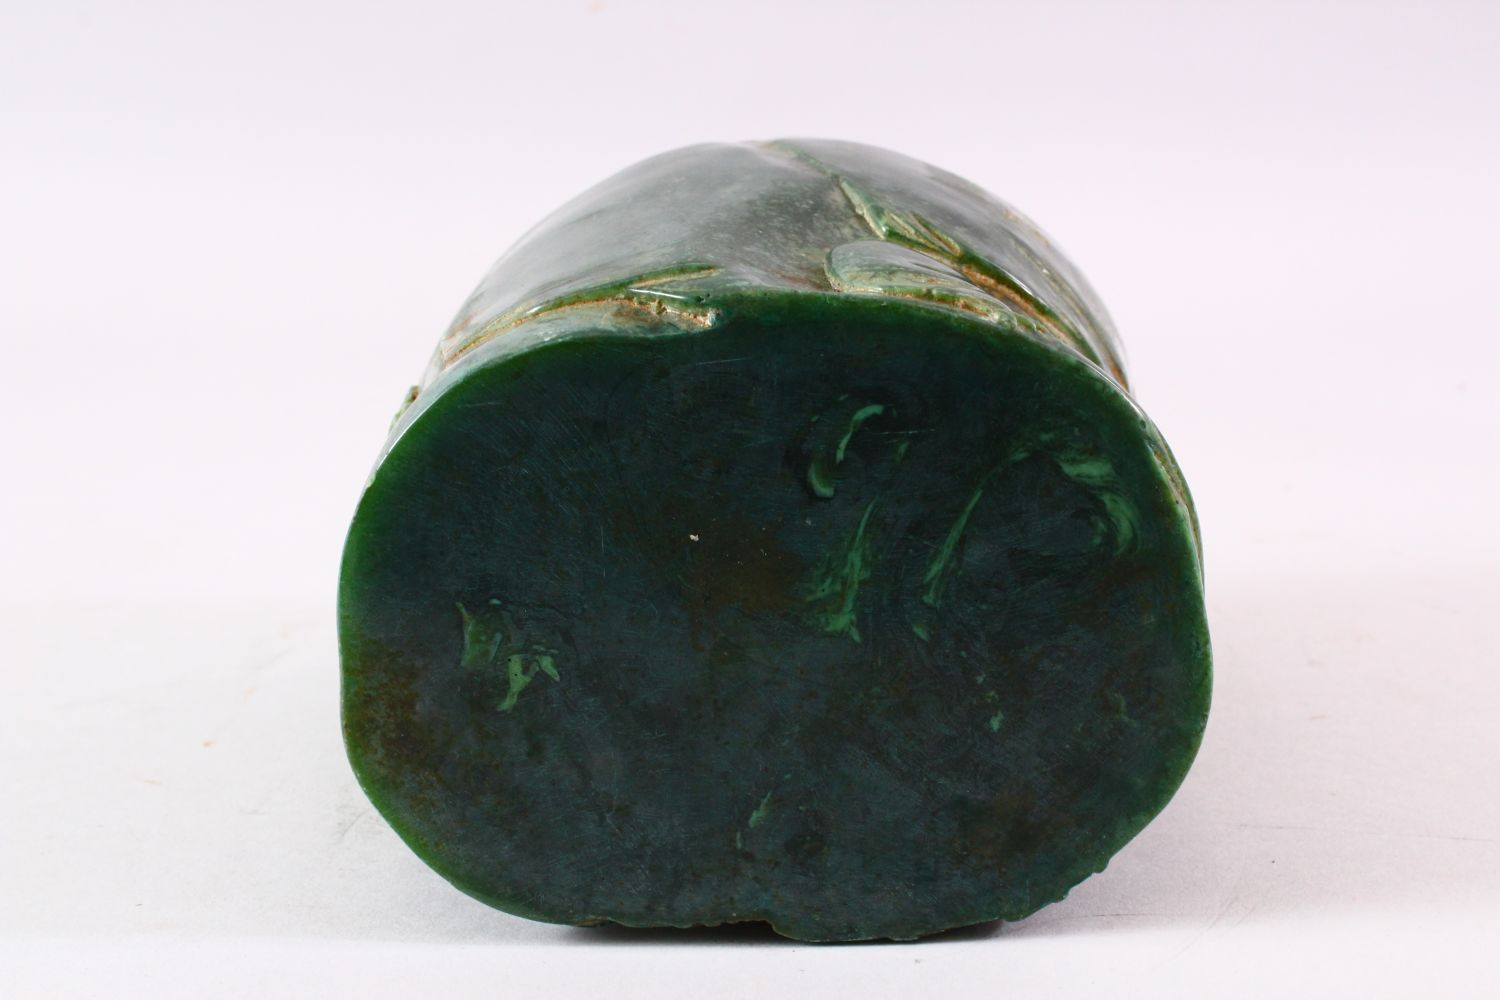 A CHINESE GREEN HARDSTONE BRUSH POT, carved with figures and trees, calligraphy, 15.5cm high. - Image 7 of 7